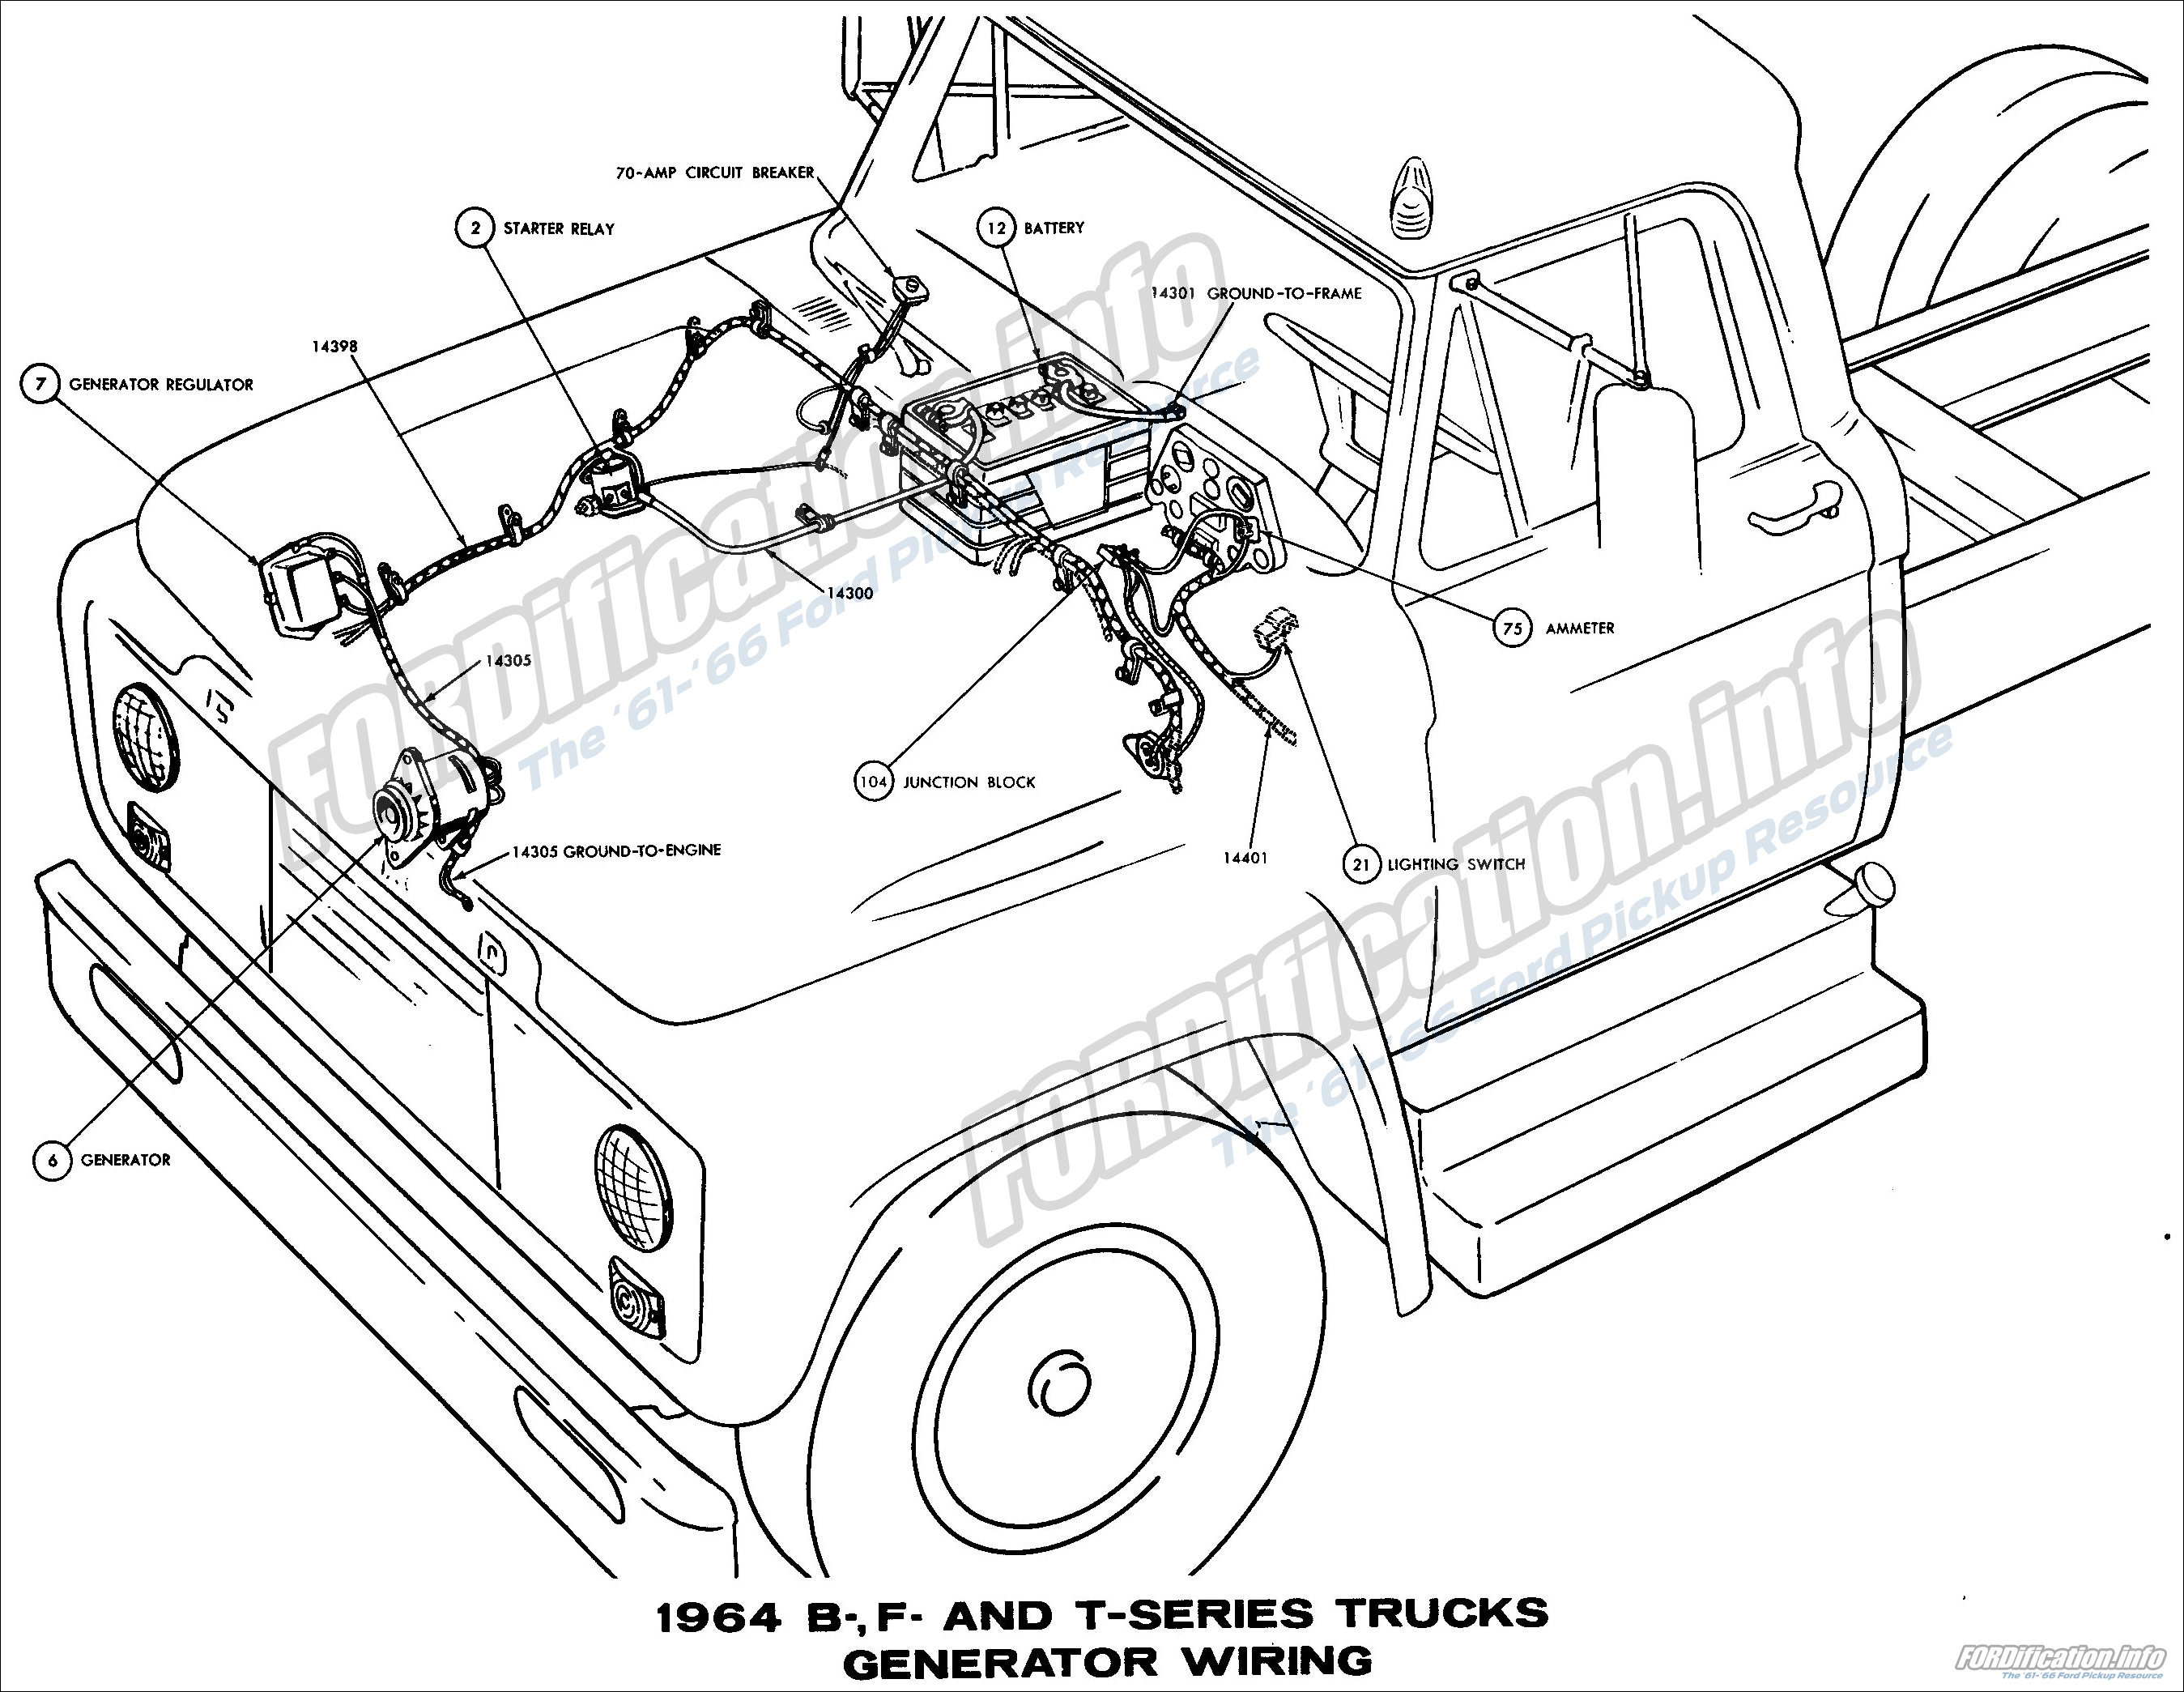 1964 ford truck wiring diagrams fordification info the 61 66 rh fordification info 1965 ford truck wiring harness 1951 Ford Wiring Diagram